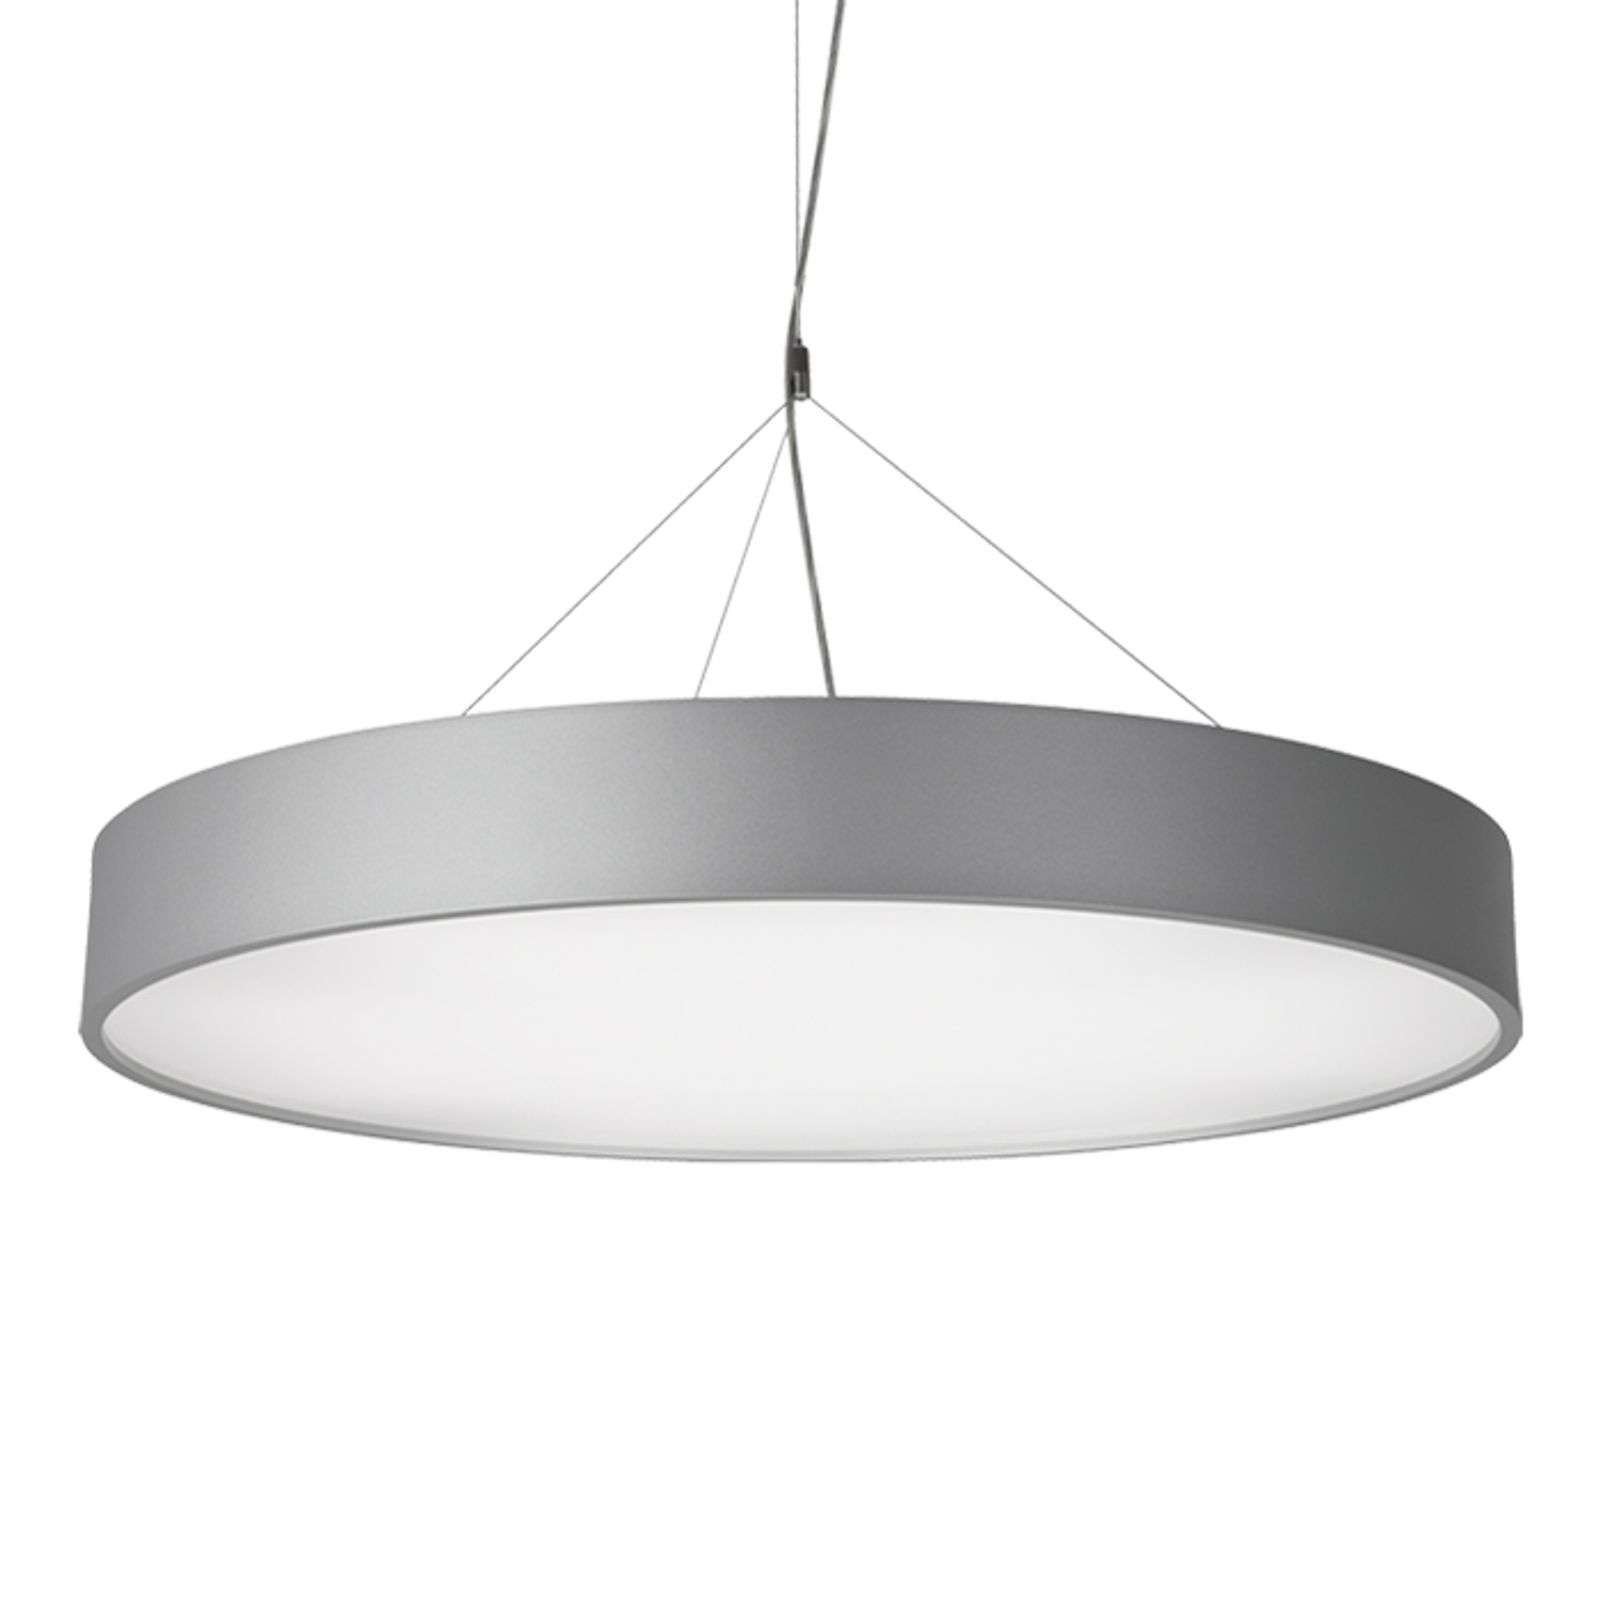 Suspension LED P945 rond gris argenté